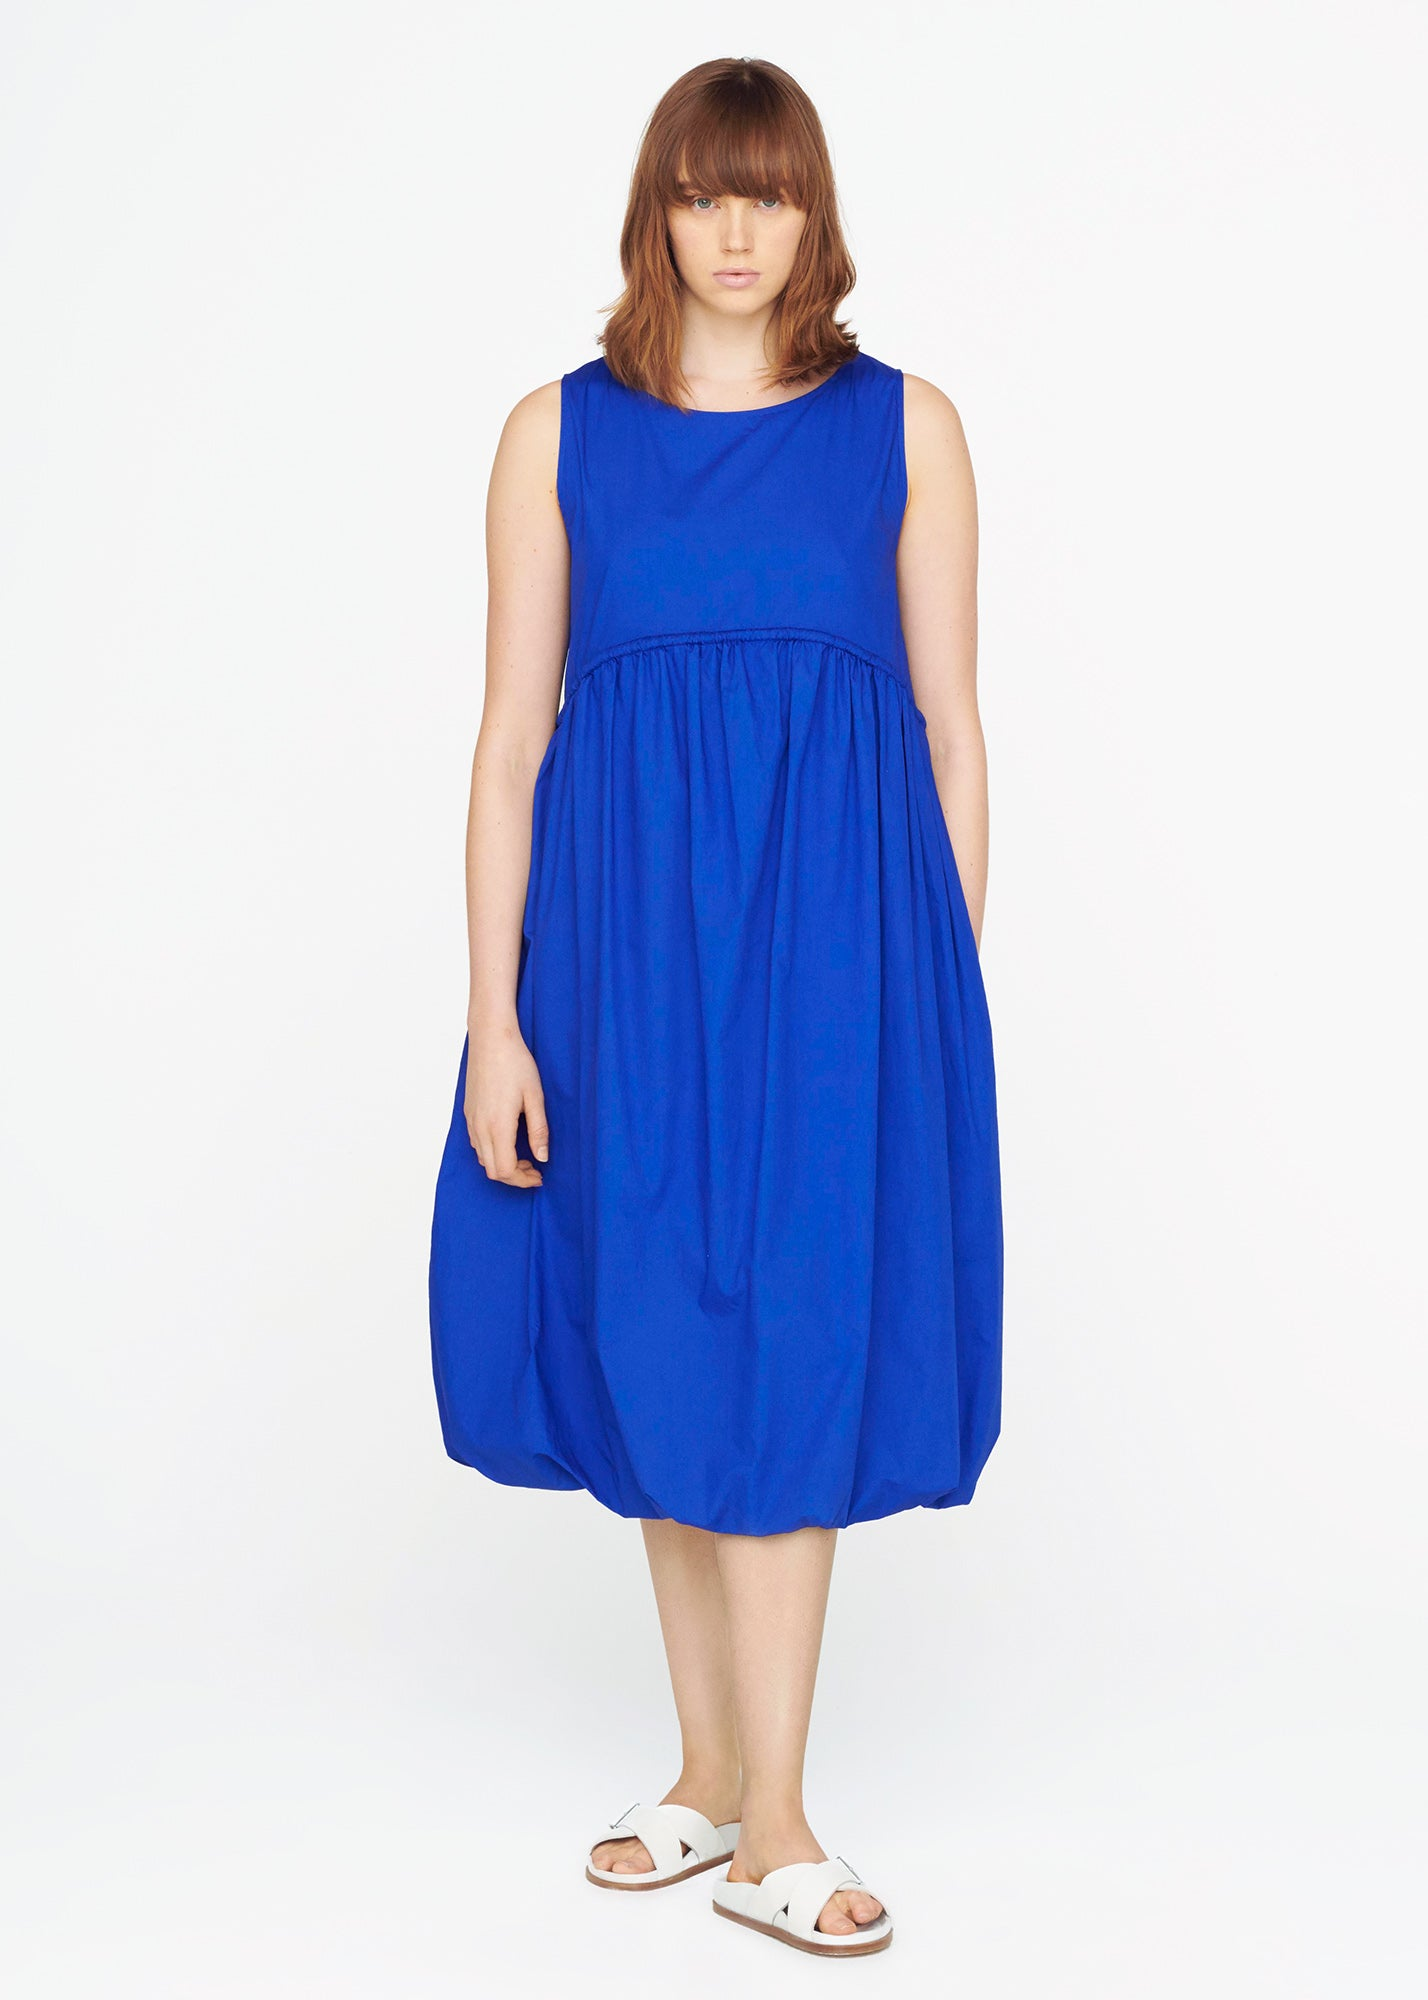 The Bellringer Dress Cobalt